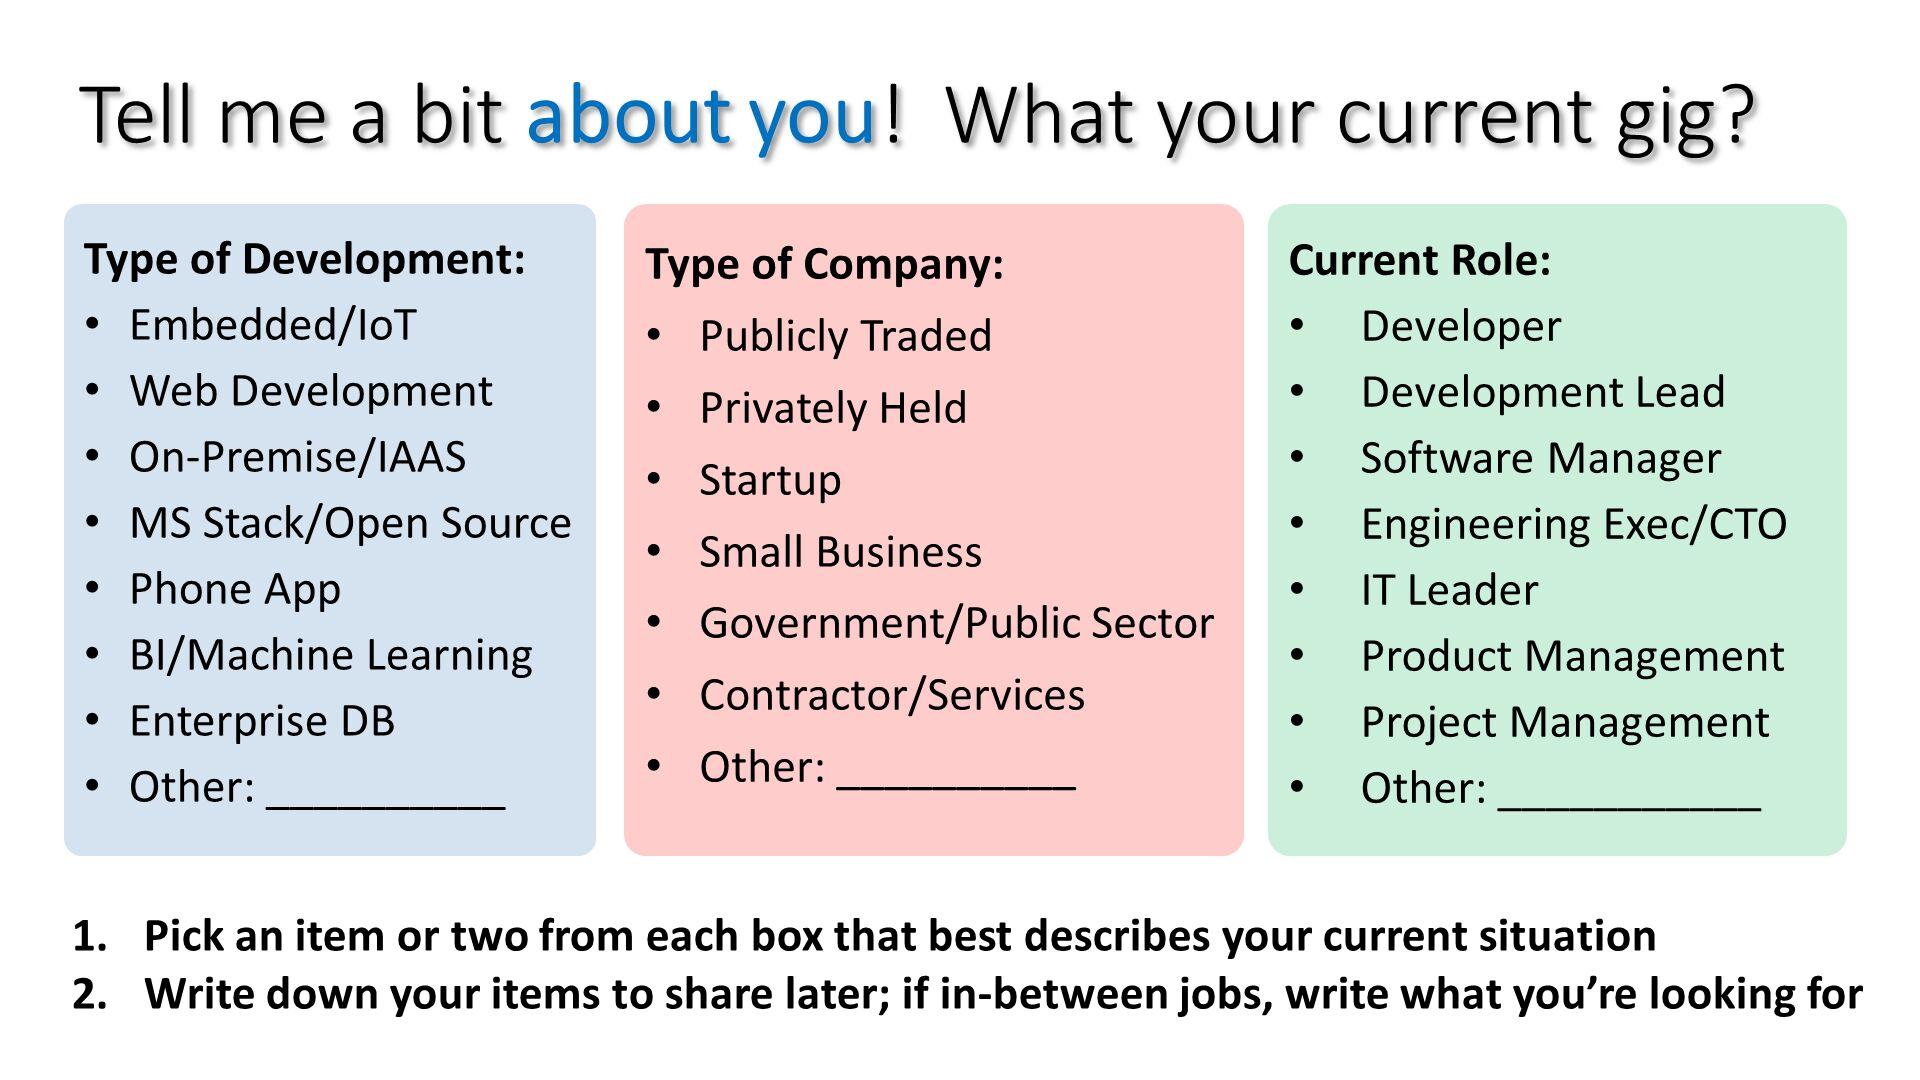 Tell me a bit about you!  What your current gig?. Type of Development: Embedded/IoT Web Development On-Premise/IAAS MS Stack/Open Source Phone App BI/Machine Learning Enterprise DB Other: __________. Type of Company: Publicly Traded Privately Held Startup Small Business Government/Public Sector Contractor/Services Other: __________. Current Role: Developer Development Lead Software Manager Engineering Exec/CTO IT Leader Product Management Project Management Other: ___________. Pick an item or two from each box that best describes your current situation Write down your items to share later; if in-between jobs, write what you're looking for.